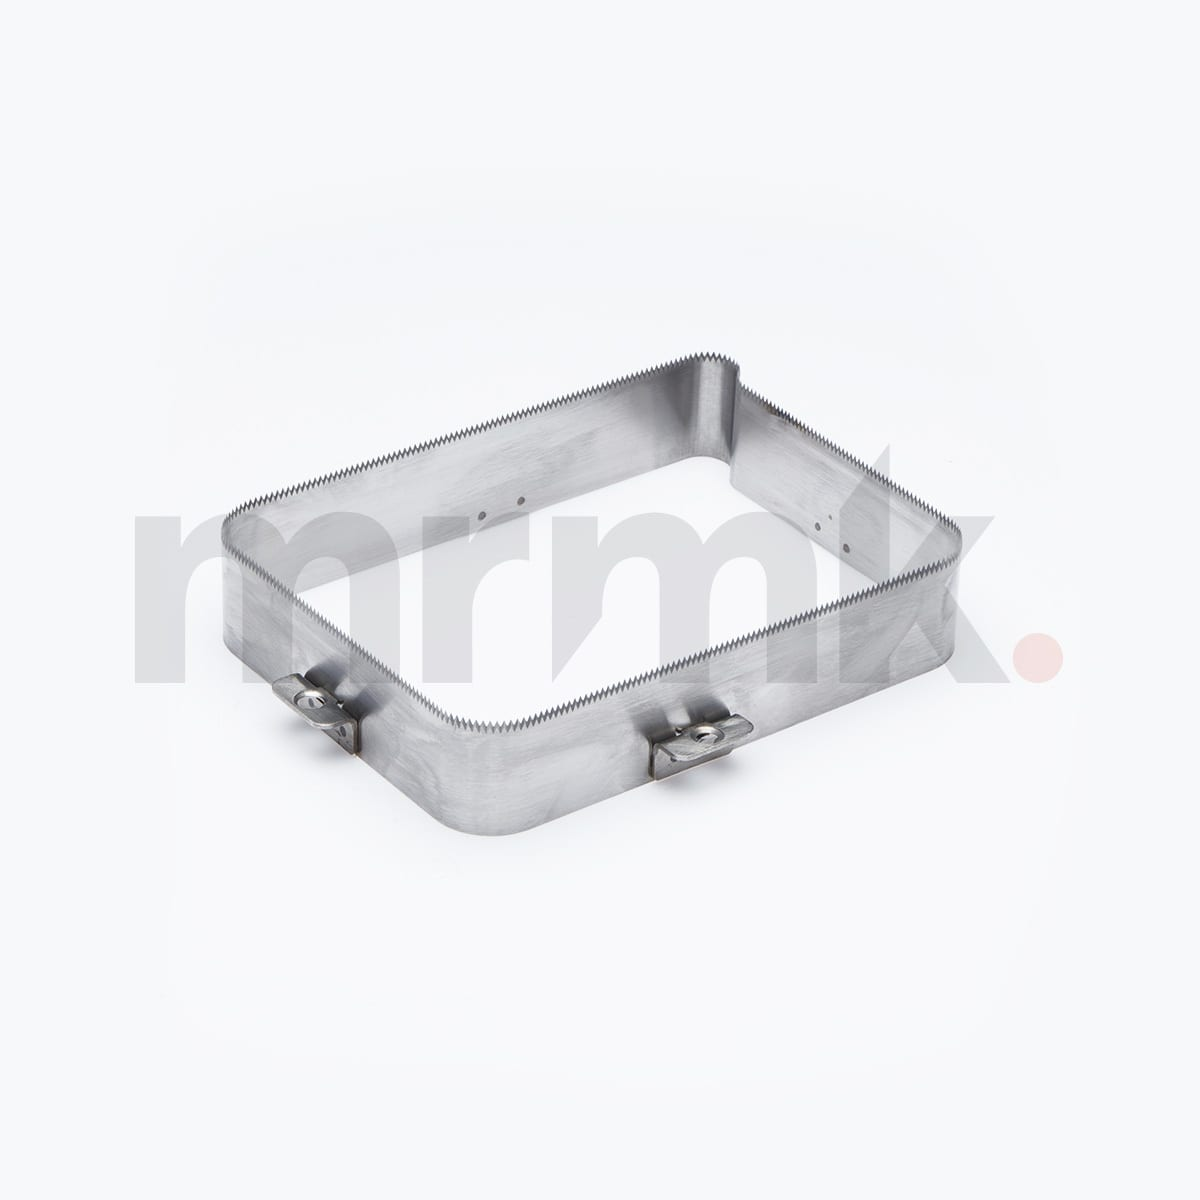 Multivac Compatible Tray Seal Knife 6